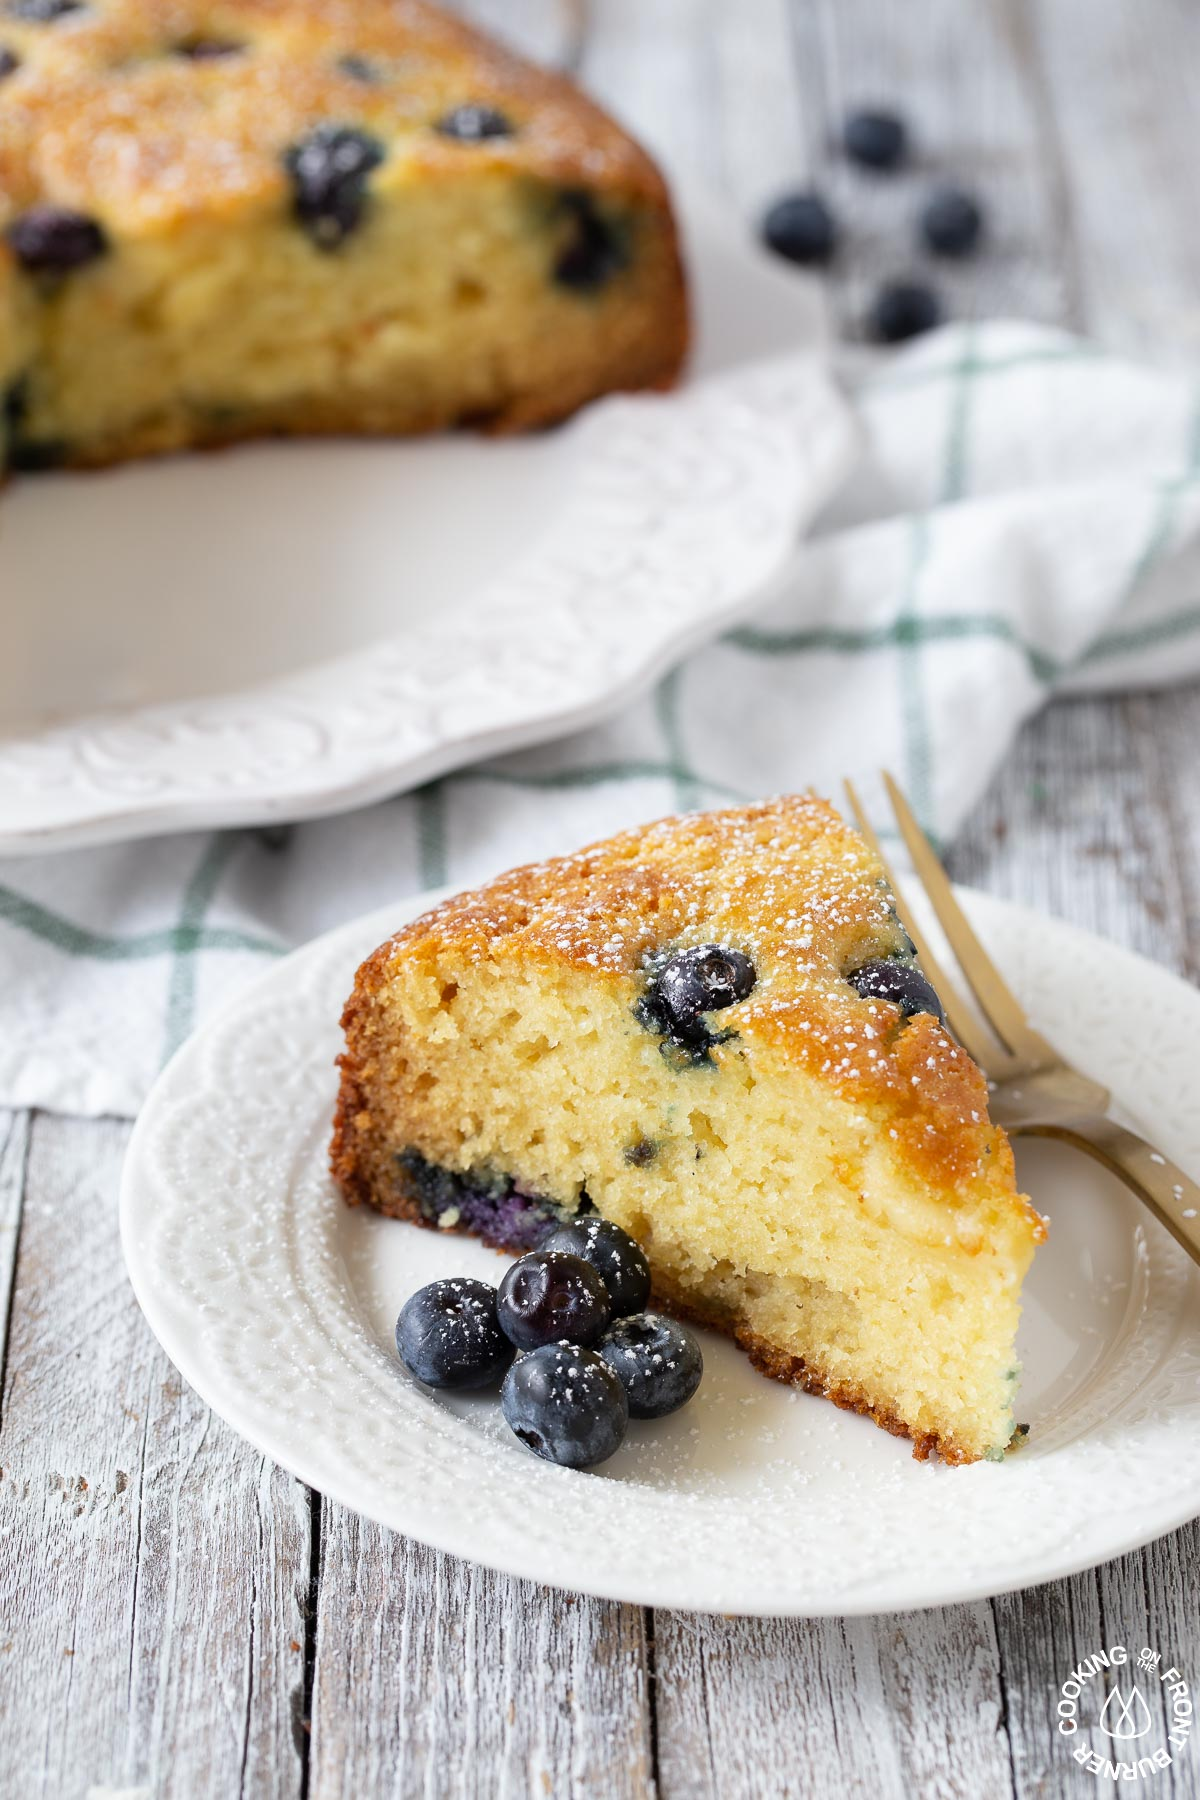 a slice of lemon blueberry ricotta cake on a plate with a fork next to it